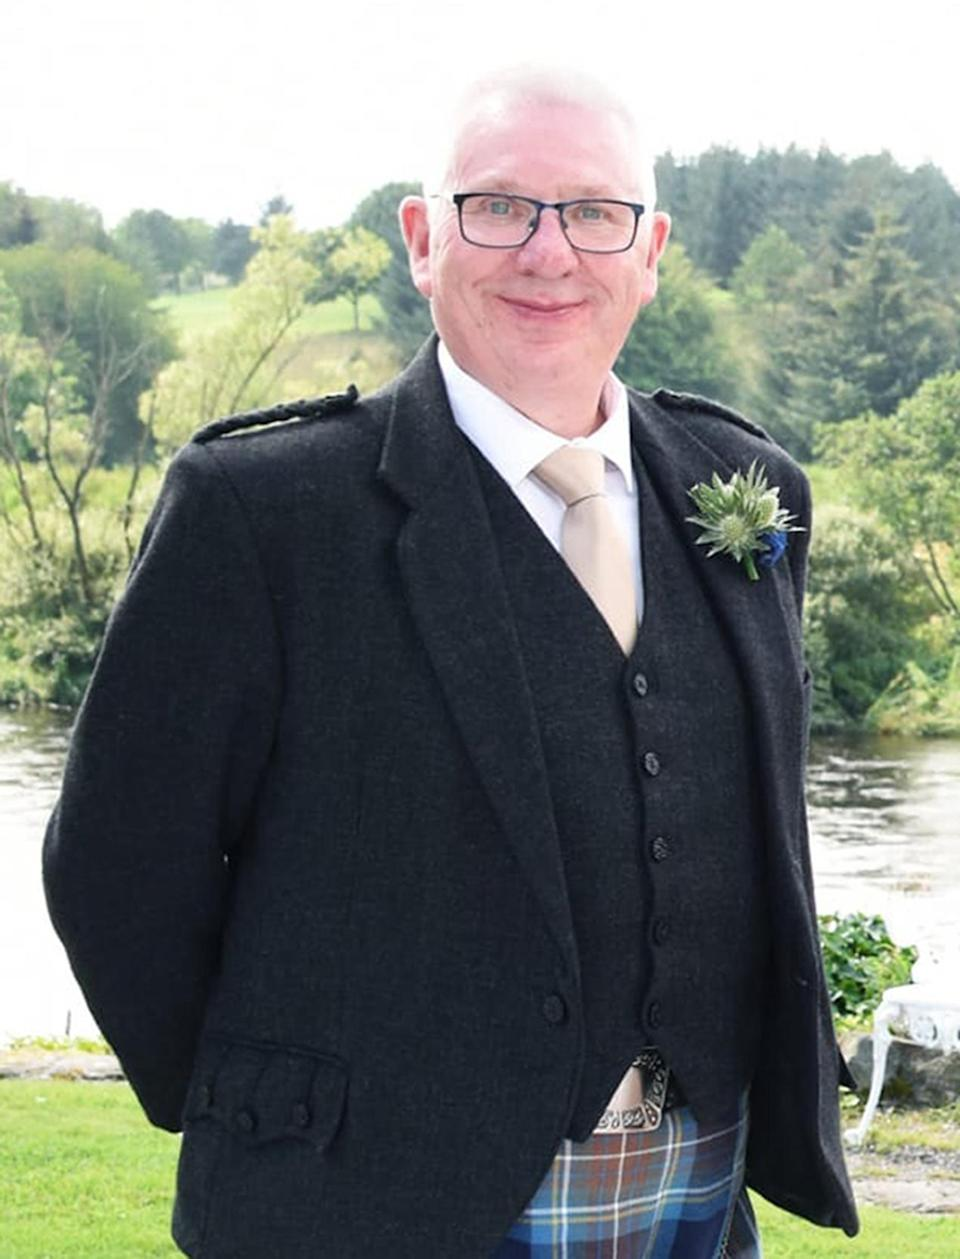 Conductor Donald Dinnie who died in the Stonehaven derailment along with the driver and a passenger. (PA)